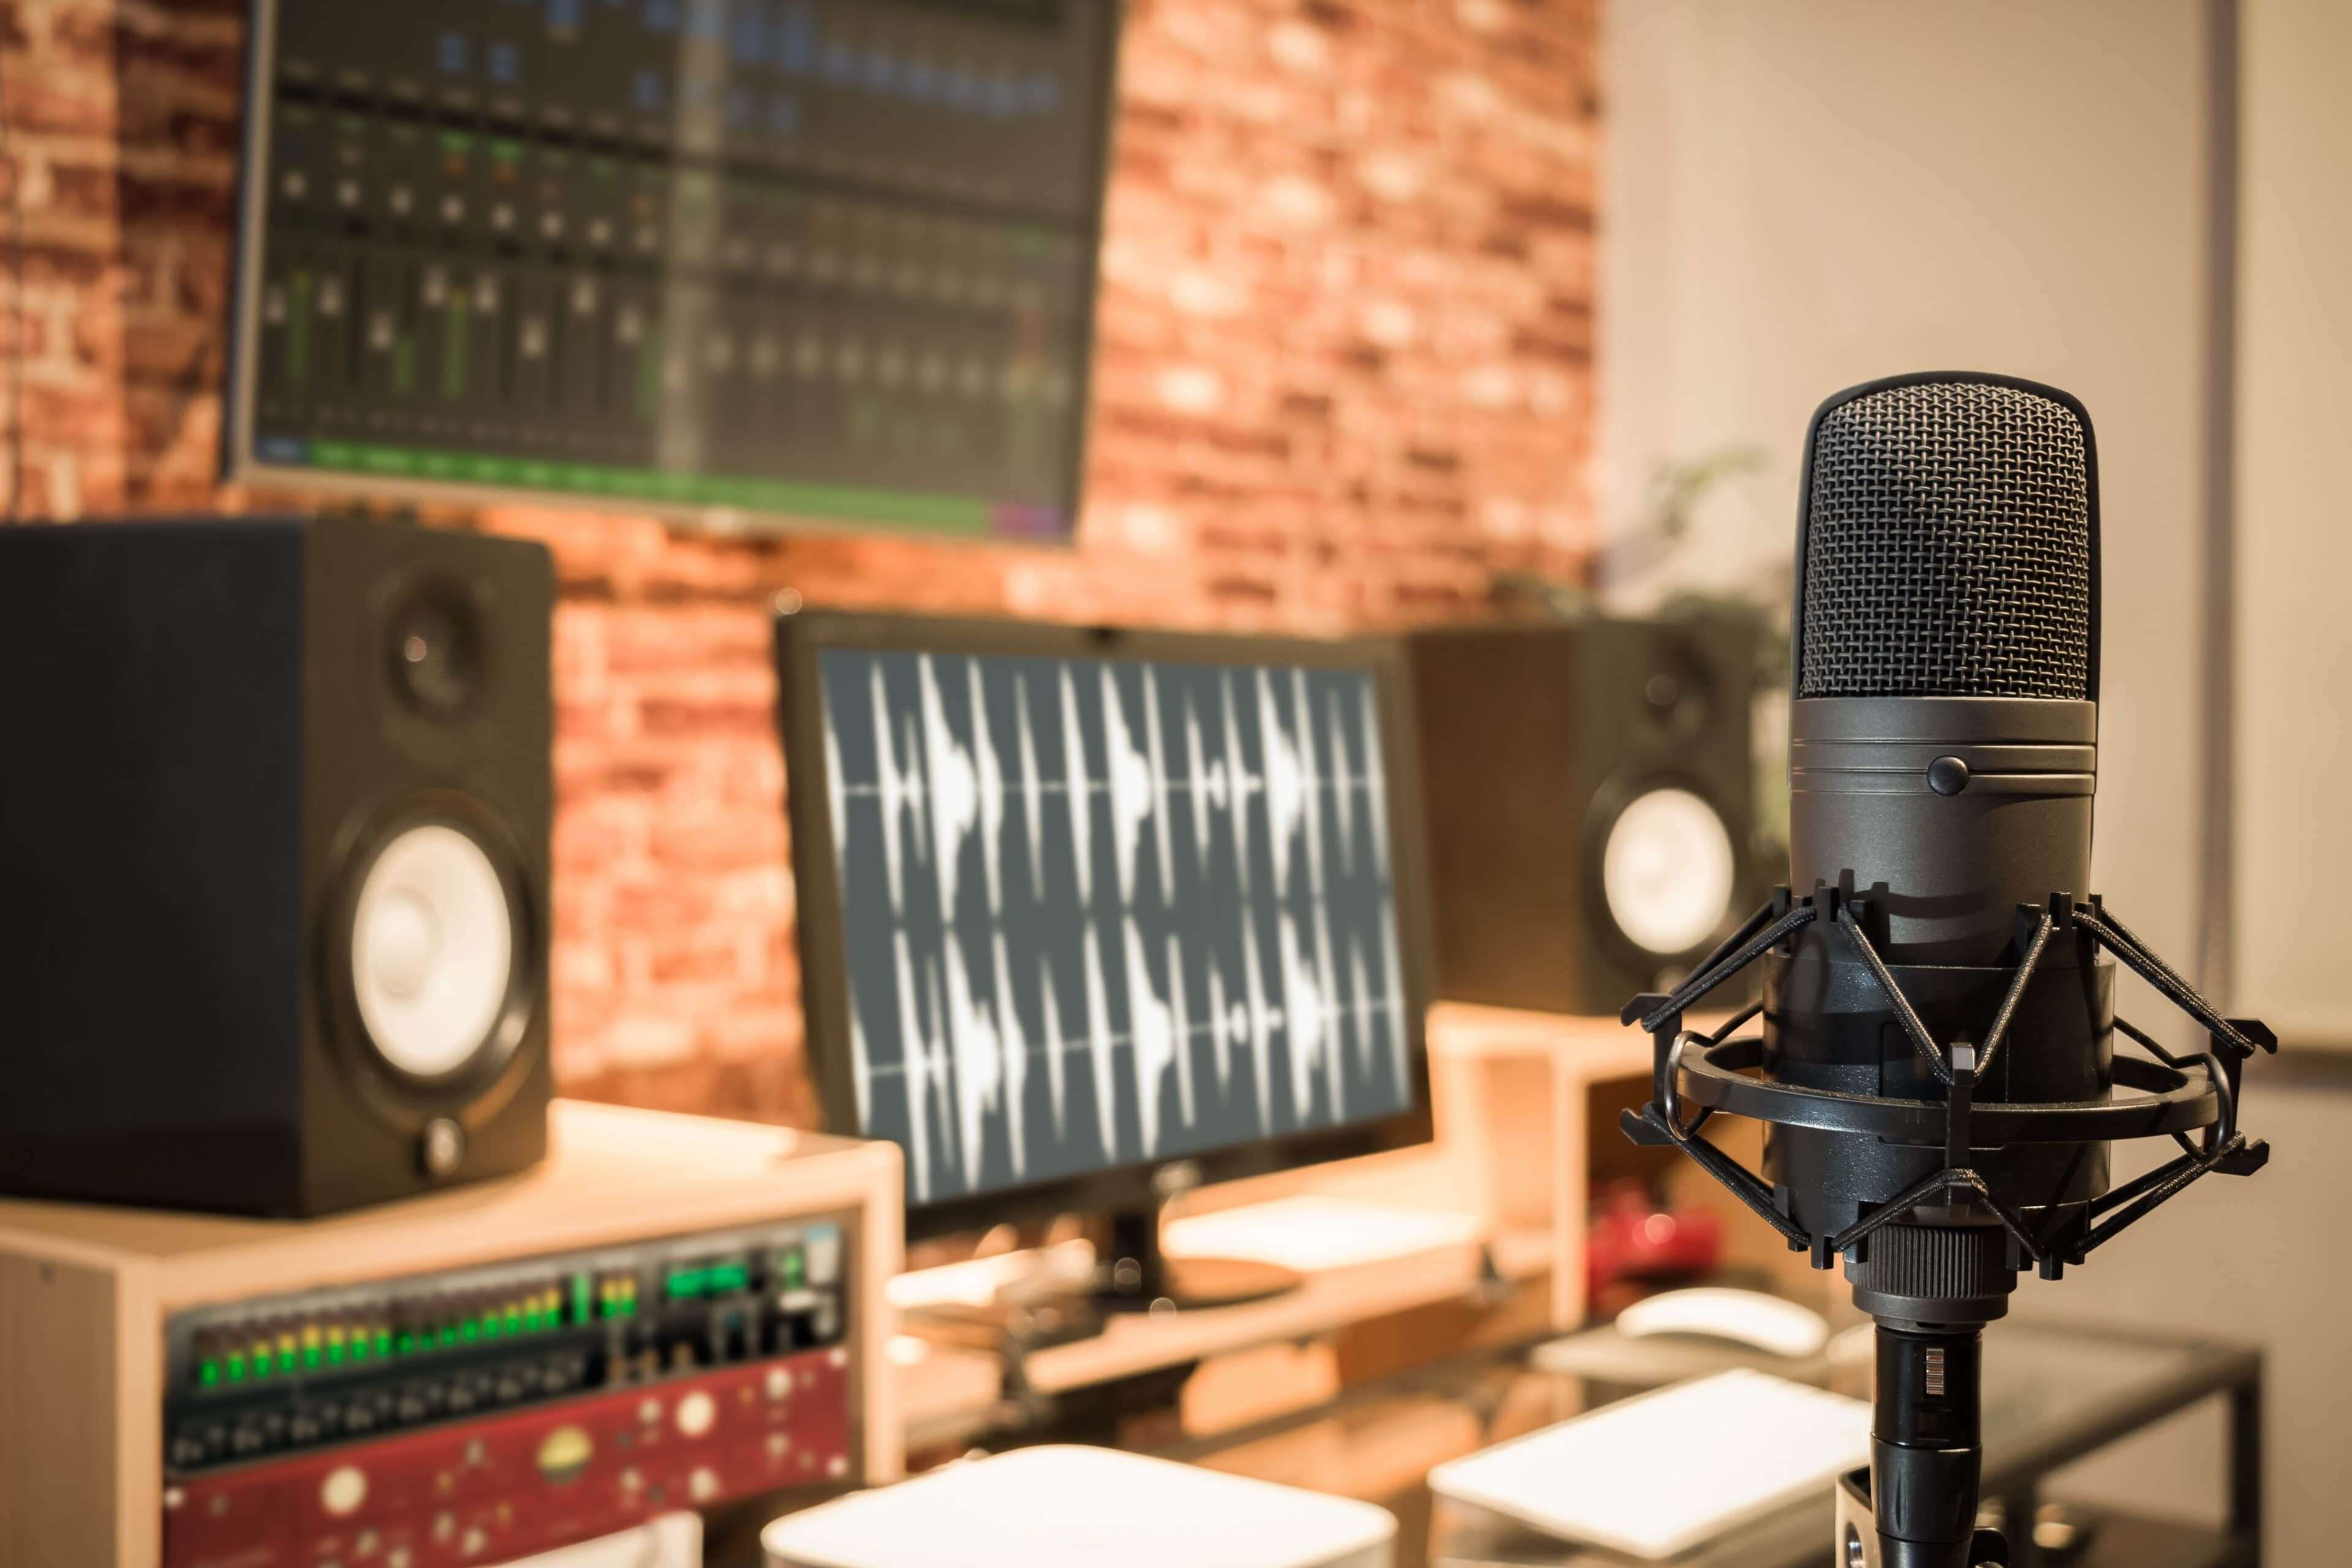 7 Podcasts to Make You a Smarter Business Owner